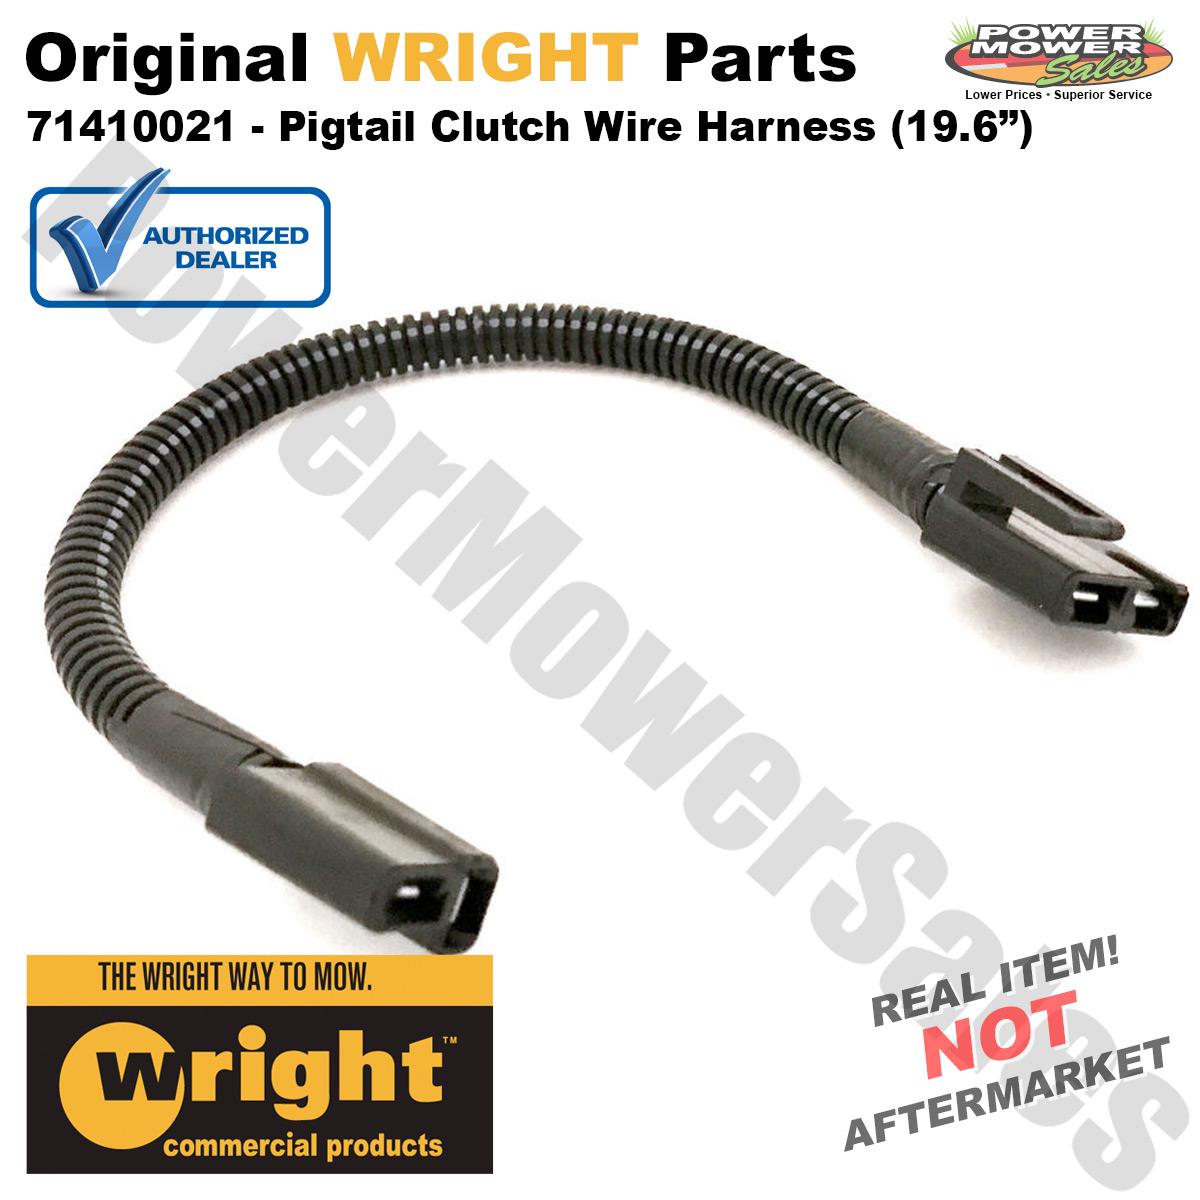 hight resolution of wright mfg pigtail clutch wire harness 19 6